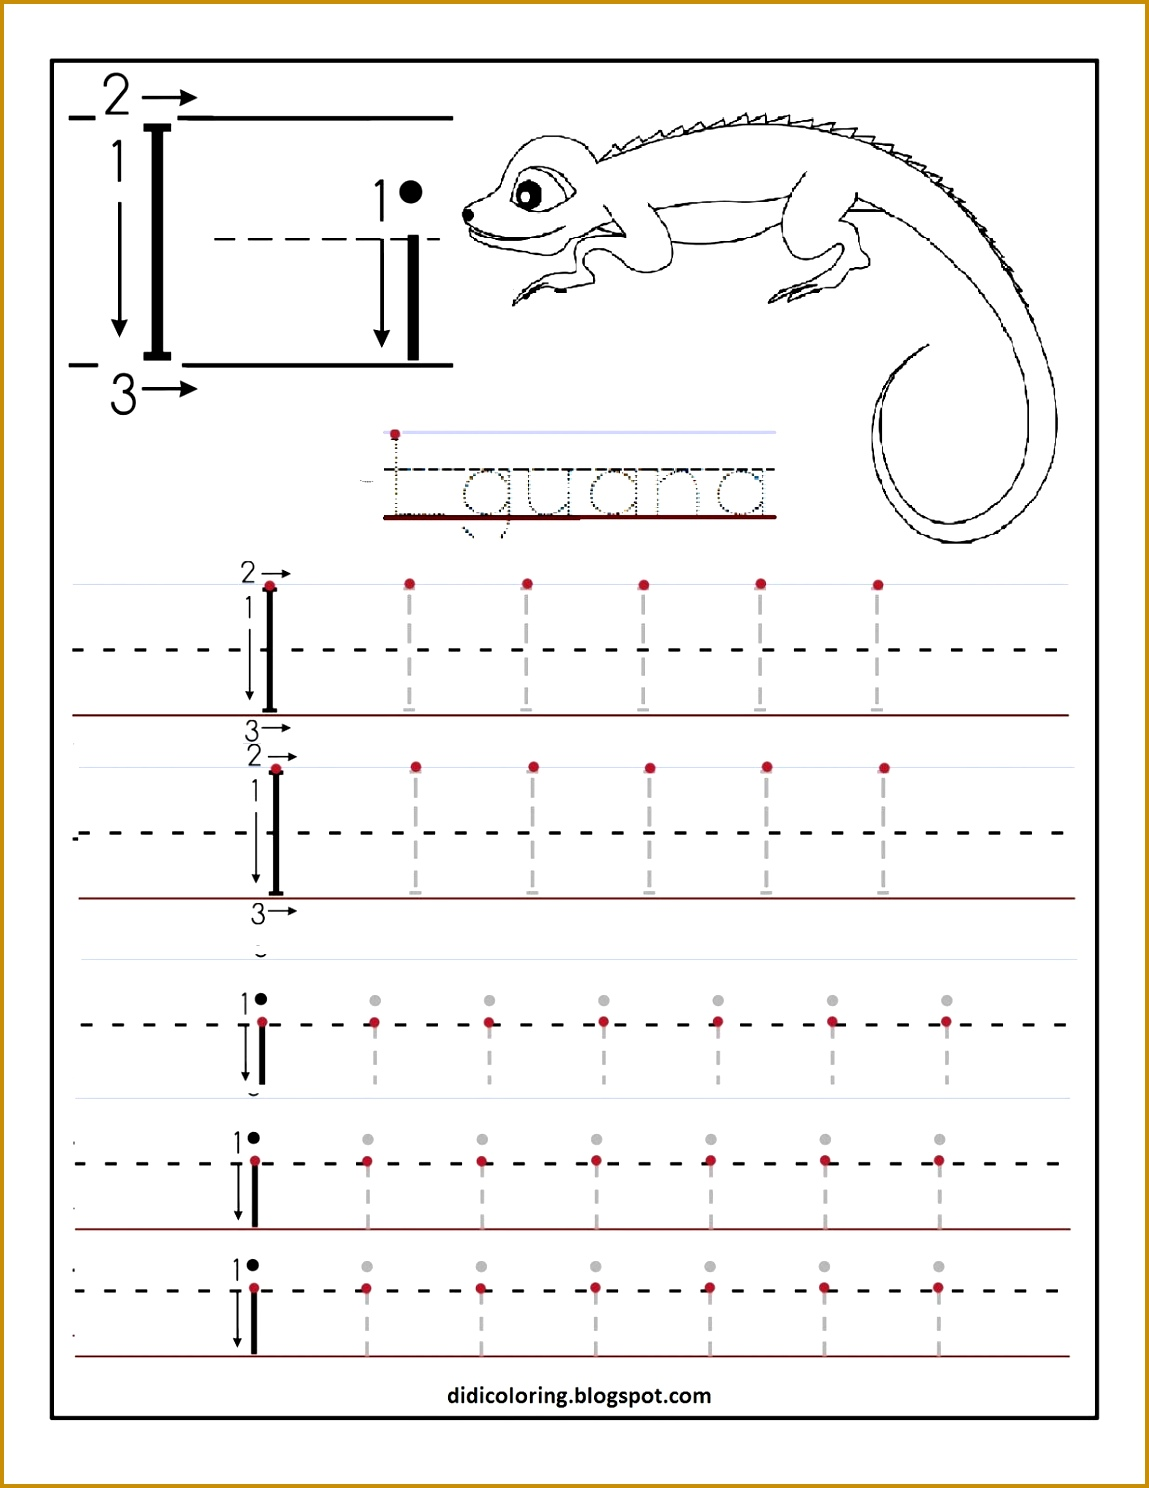 6 Alphabet Tracing Worksheets